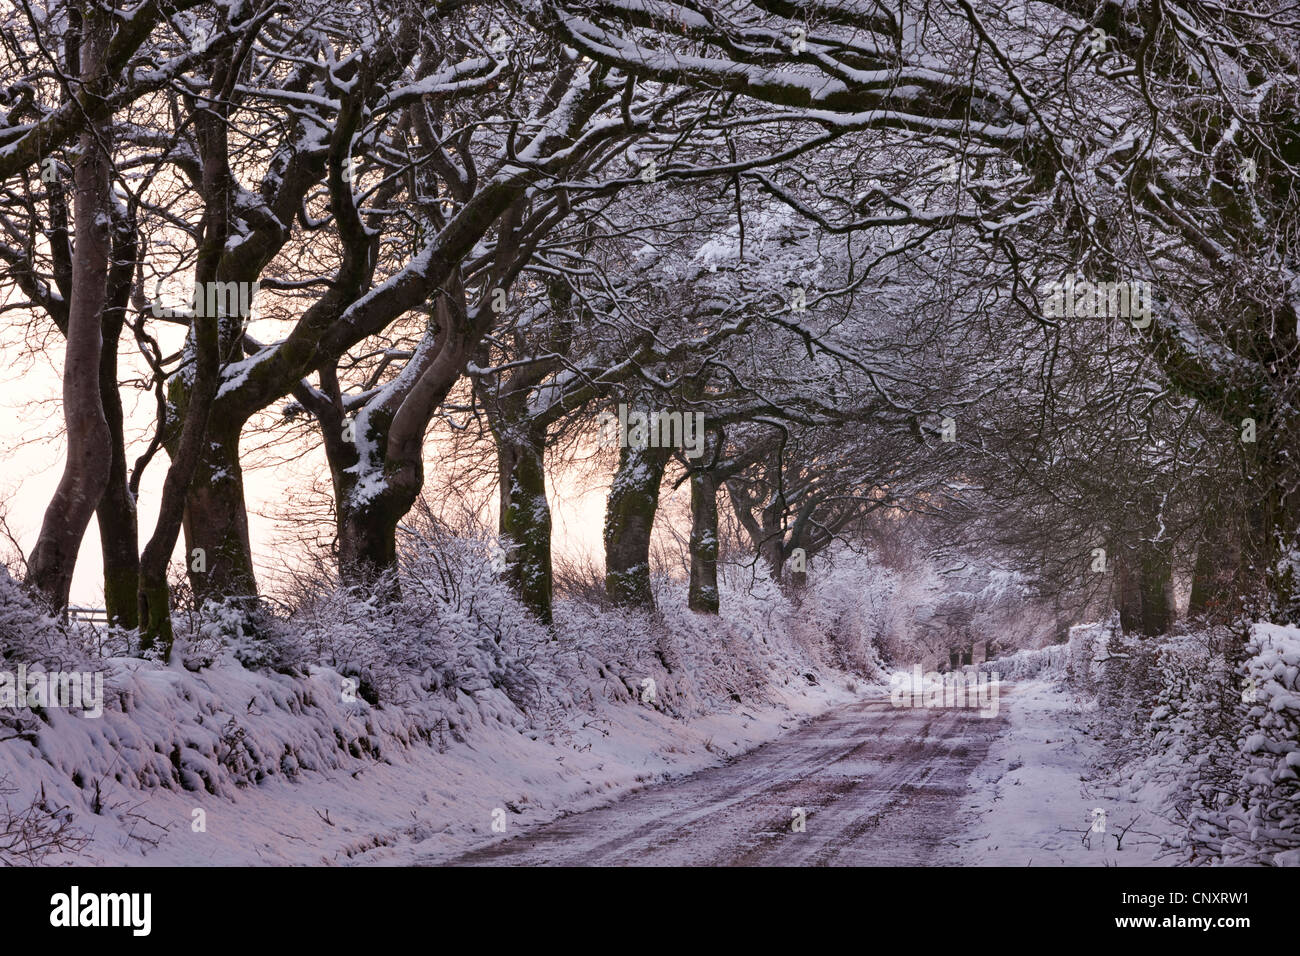 Snow covered country lane through trees, Exmoor, Somerset, England. Winter (January) 2012. - Stock Image